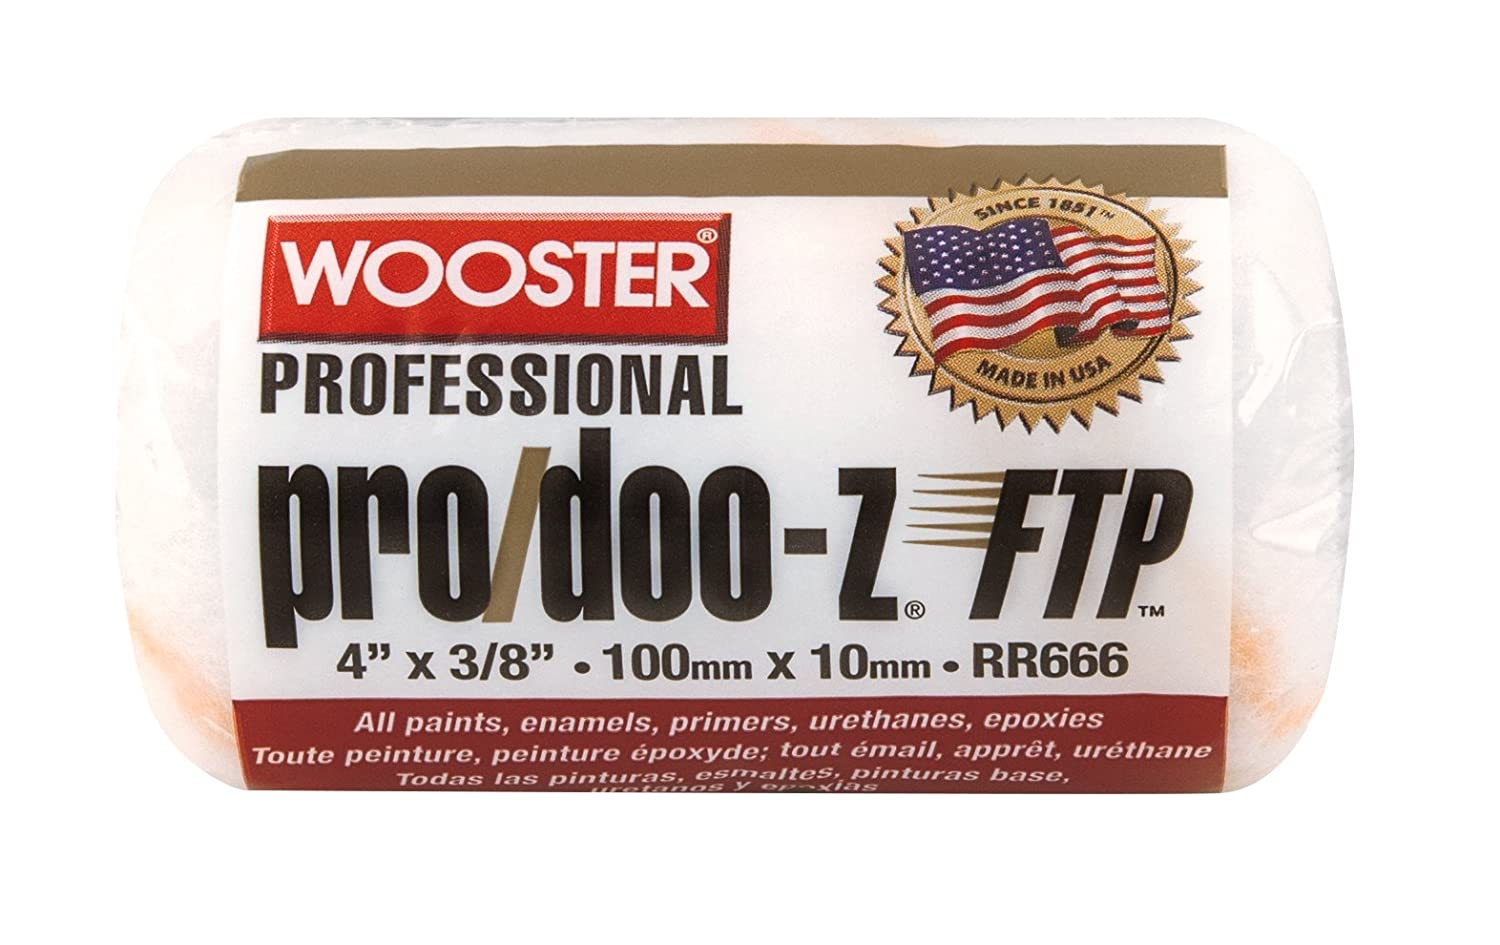 Wooster Brush RR666-4 Pro Doo Z FTP Roller Cover 3/8-Inch Nap